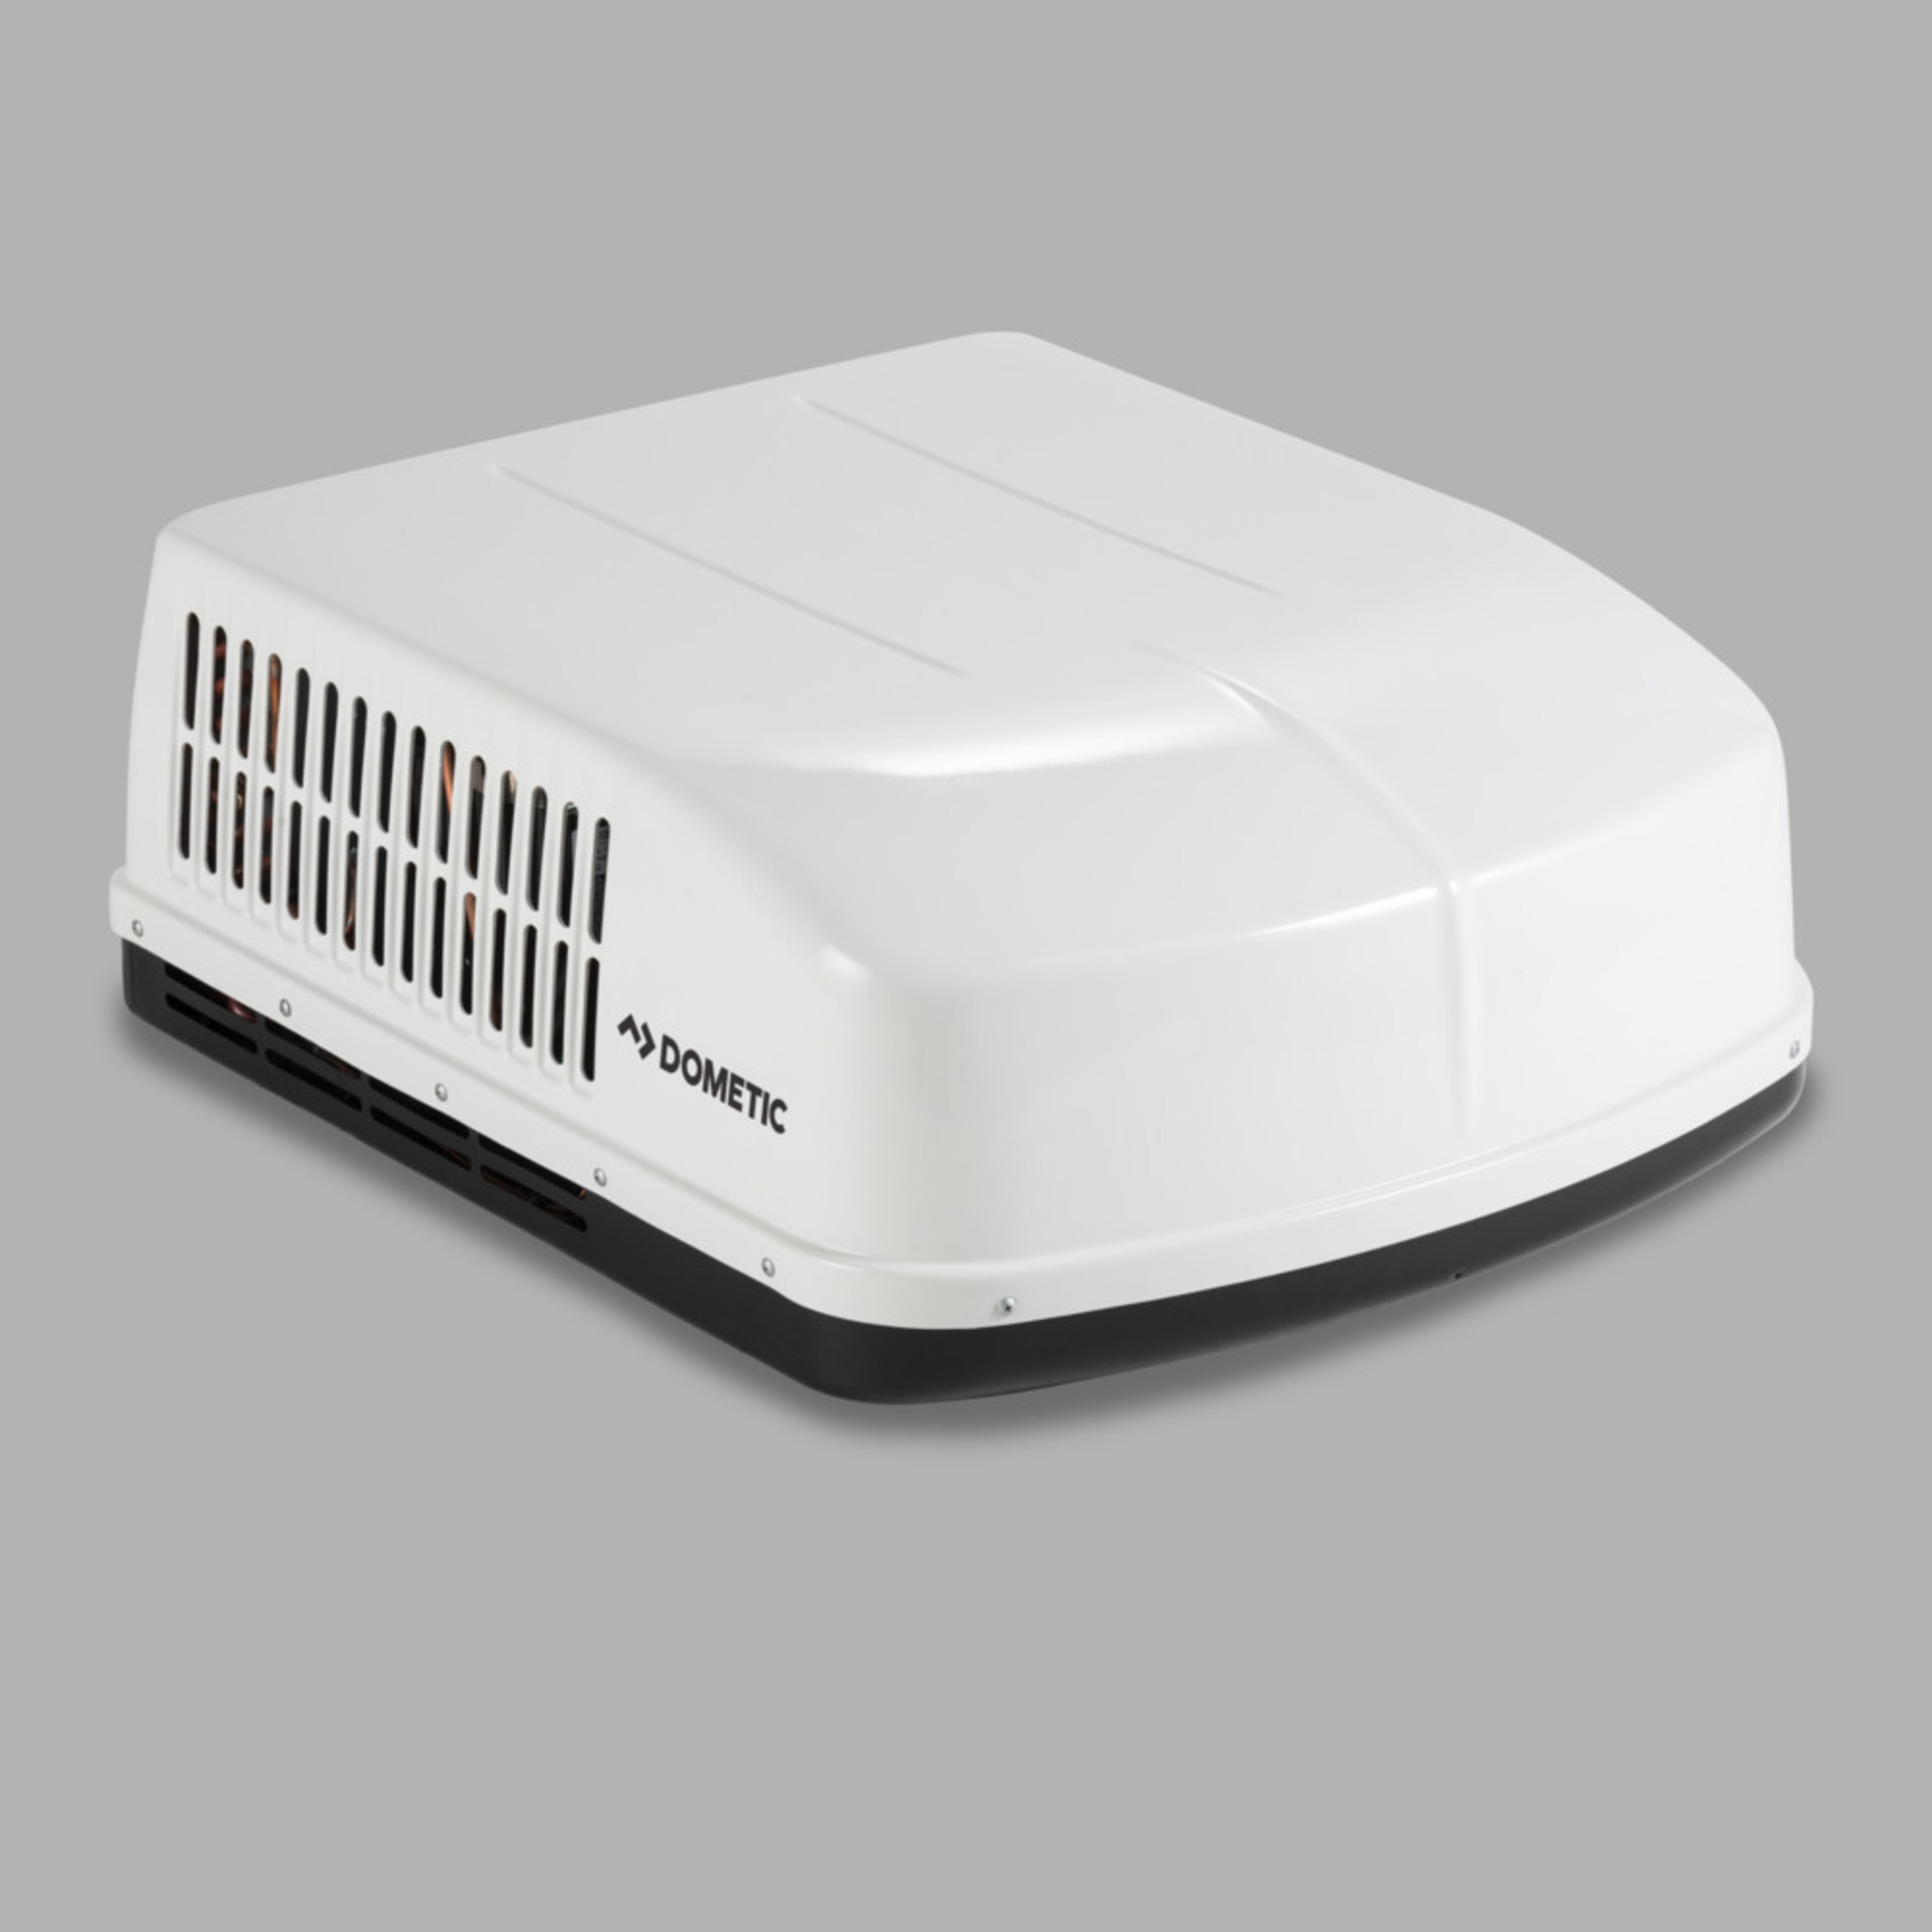 Dometic DuraSea